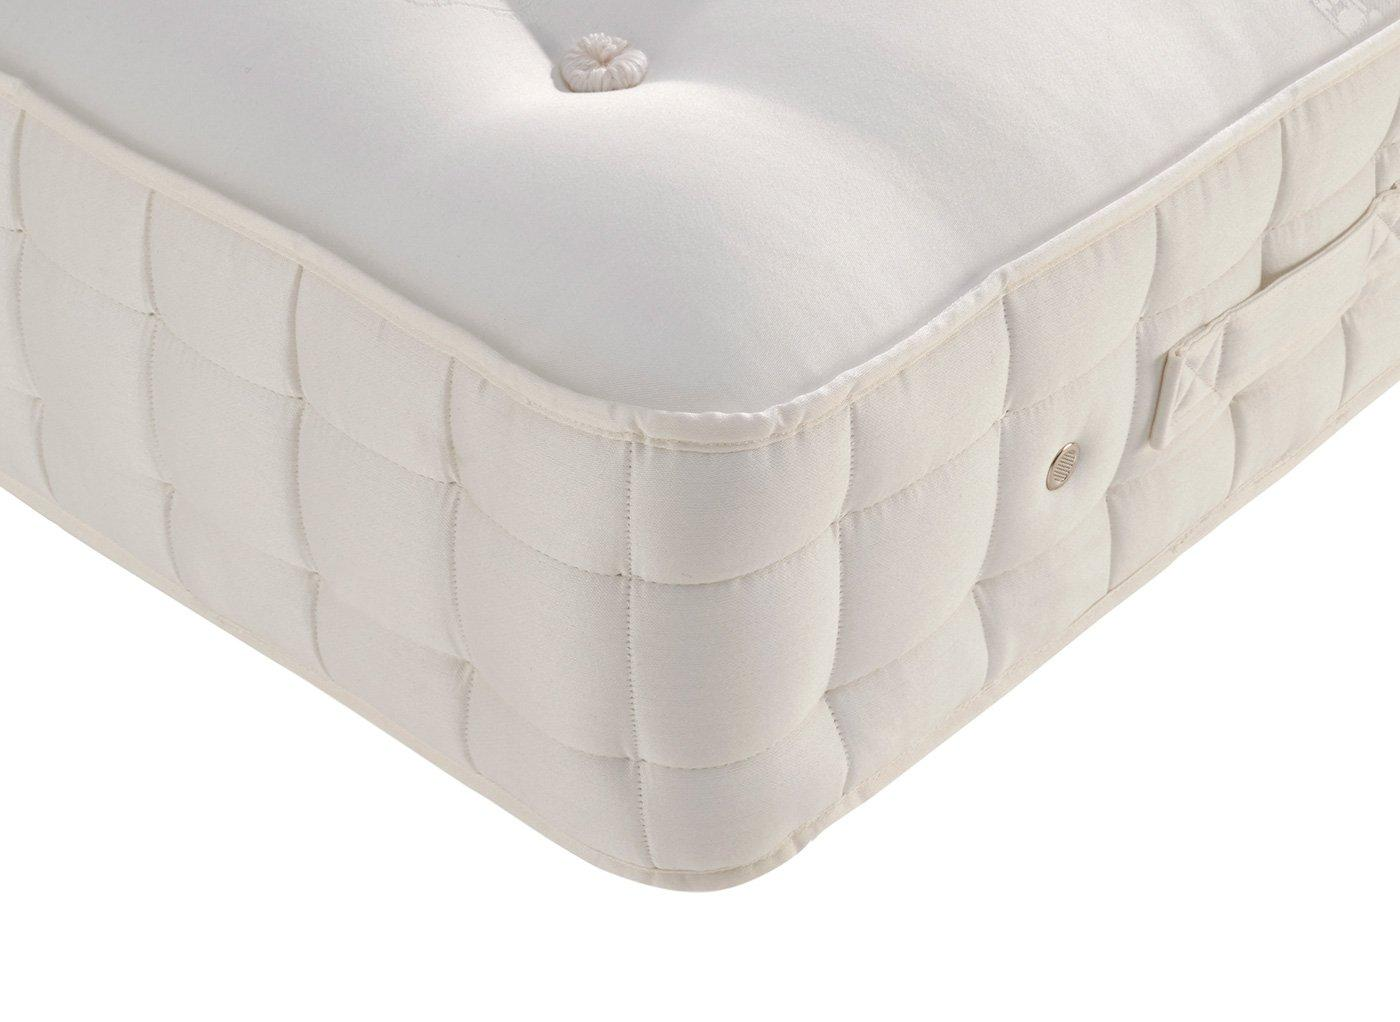 Hypnos Swinton Pocket Sprung Mattress